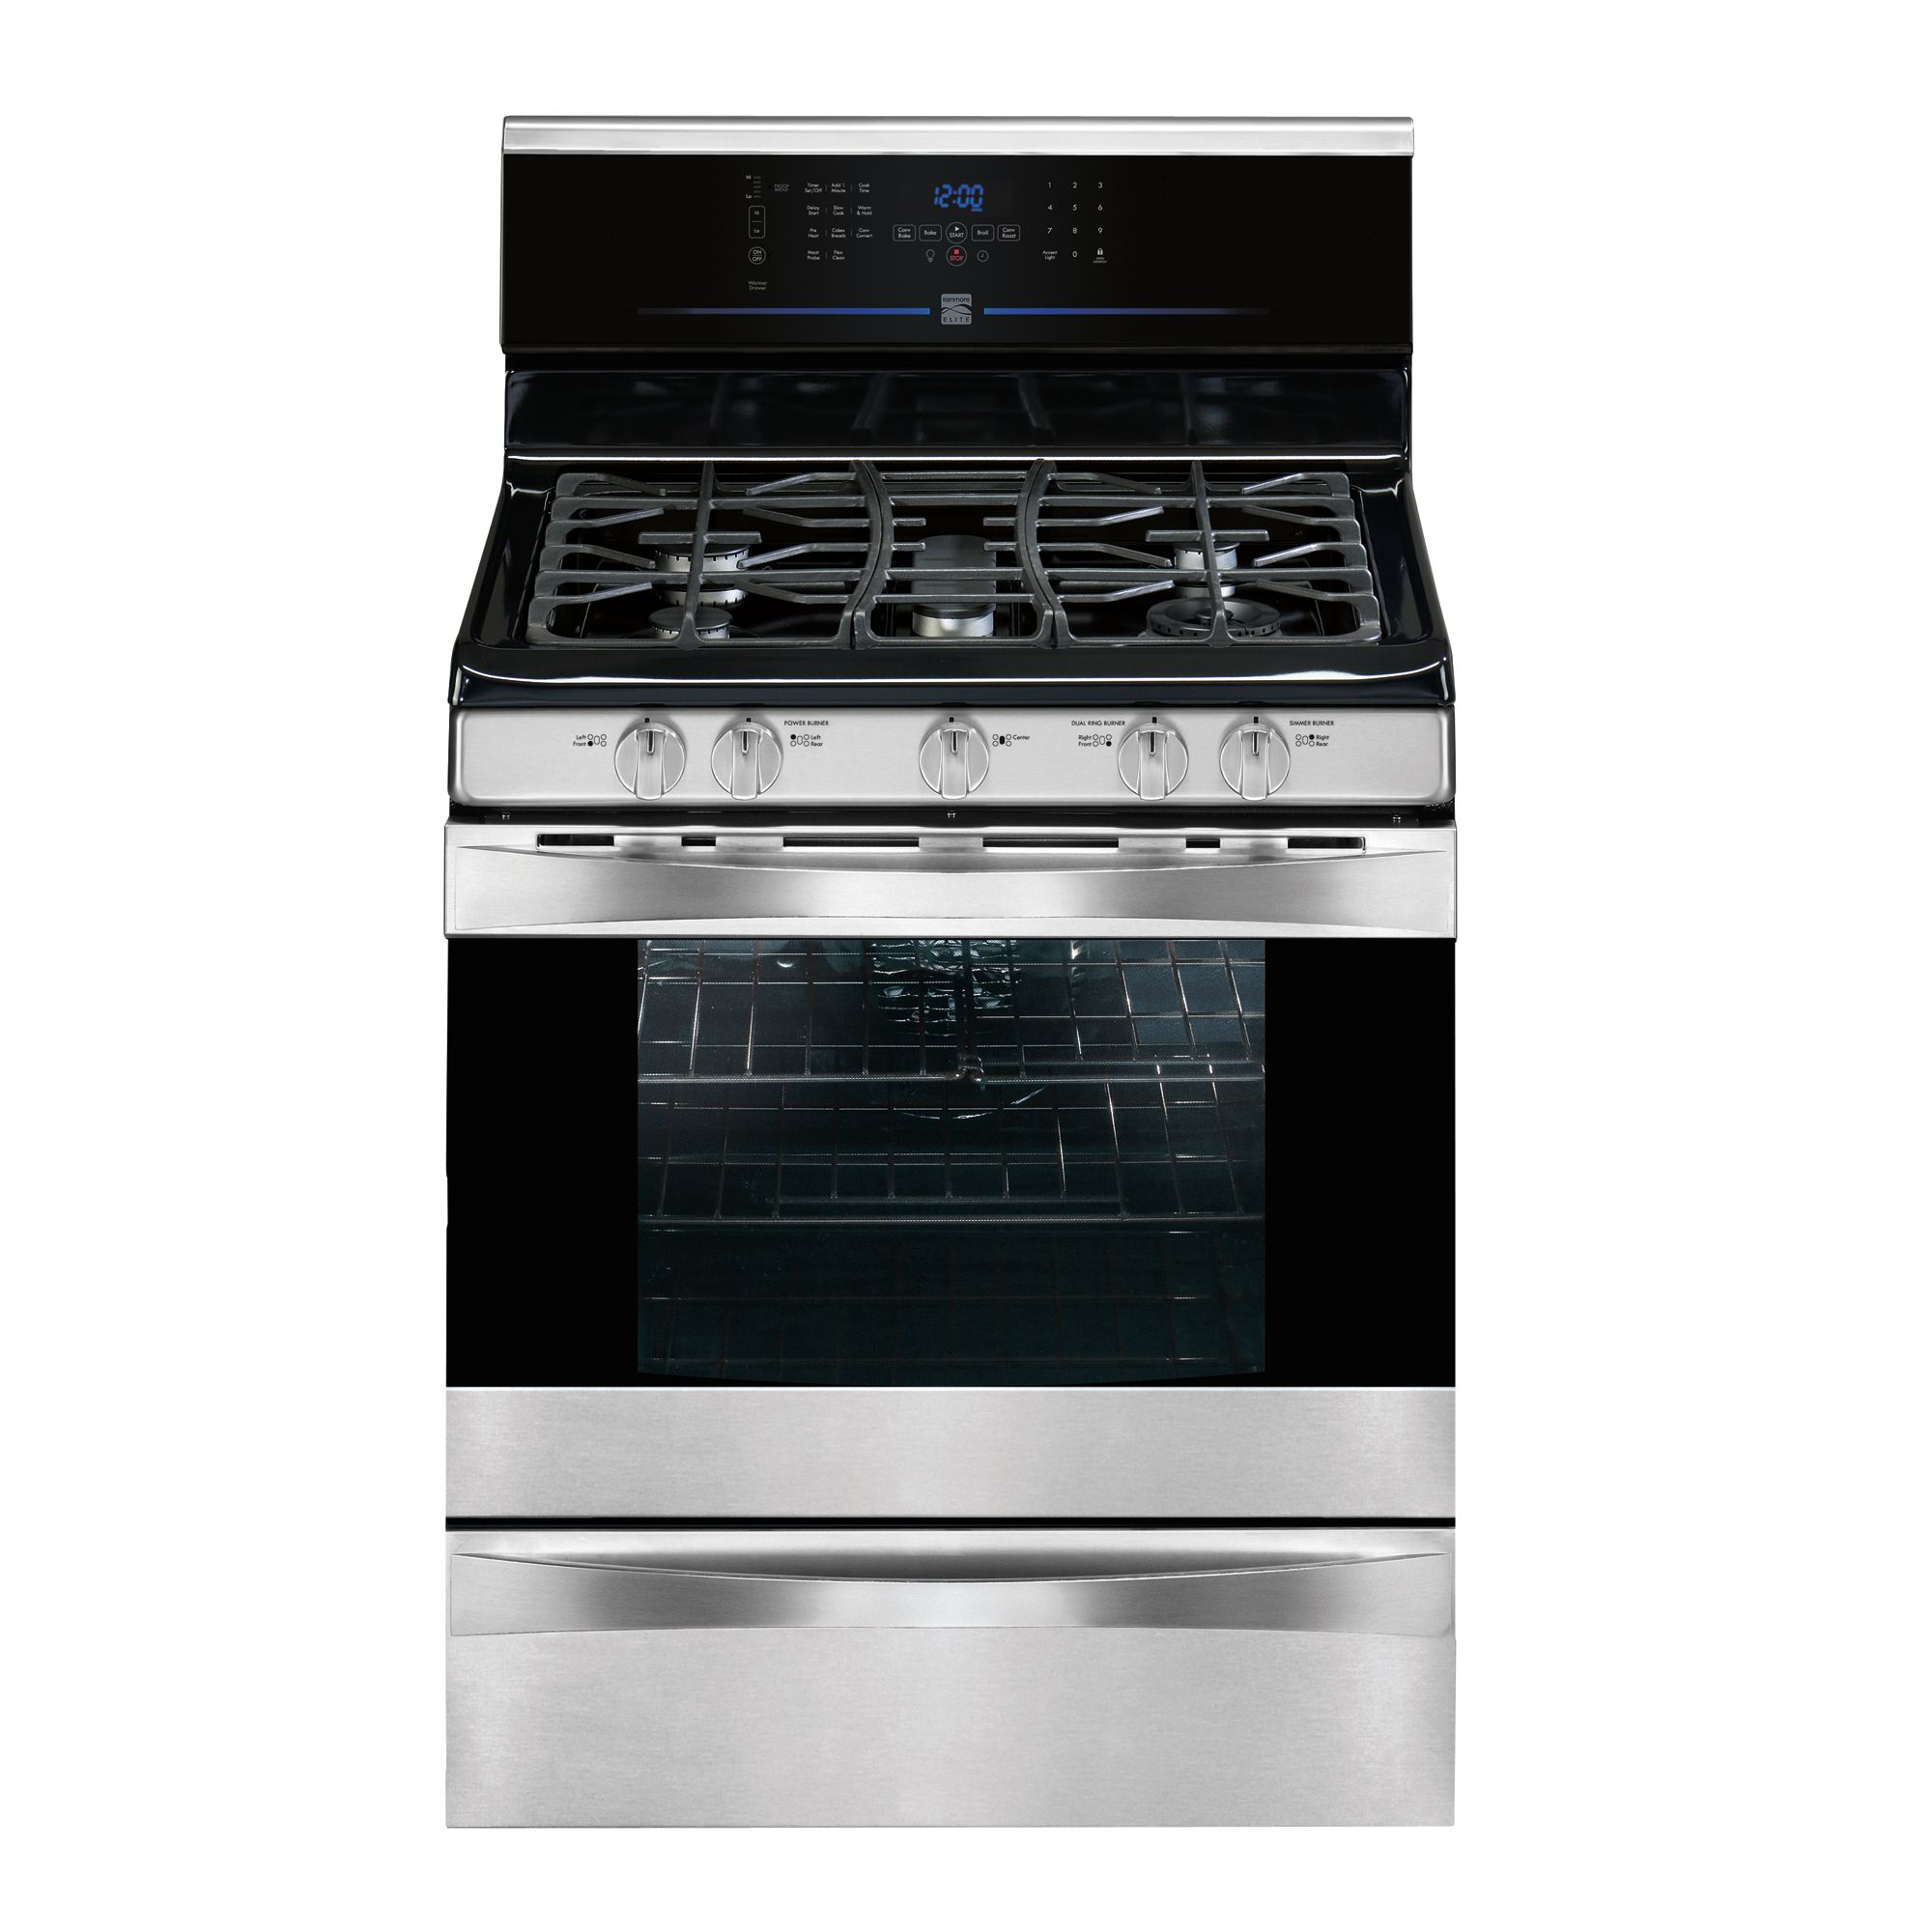 Kenmore Elite 5.1 cu. ft. Freestanding Gas Range - Stainless Steel